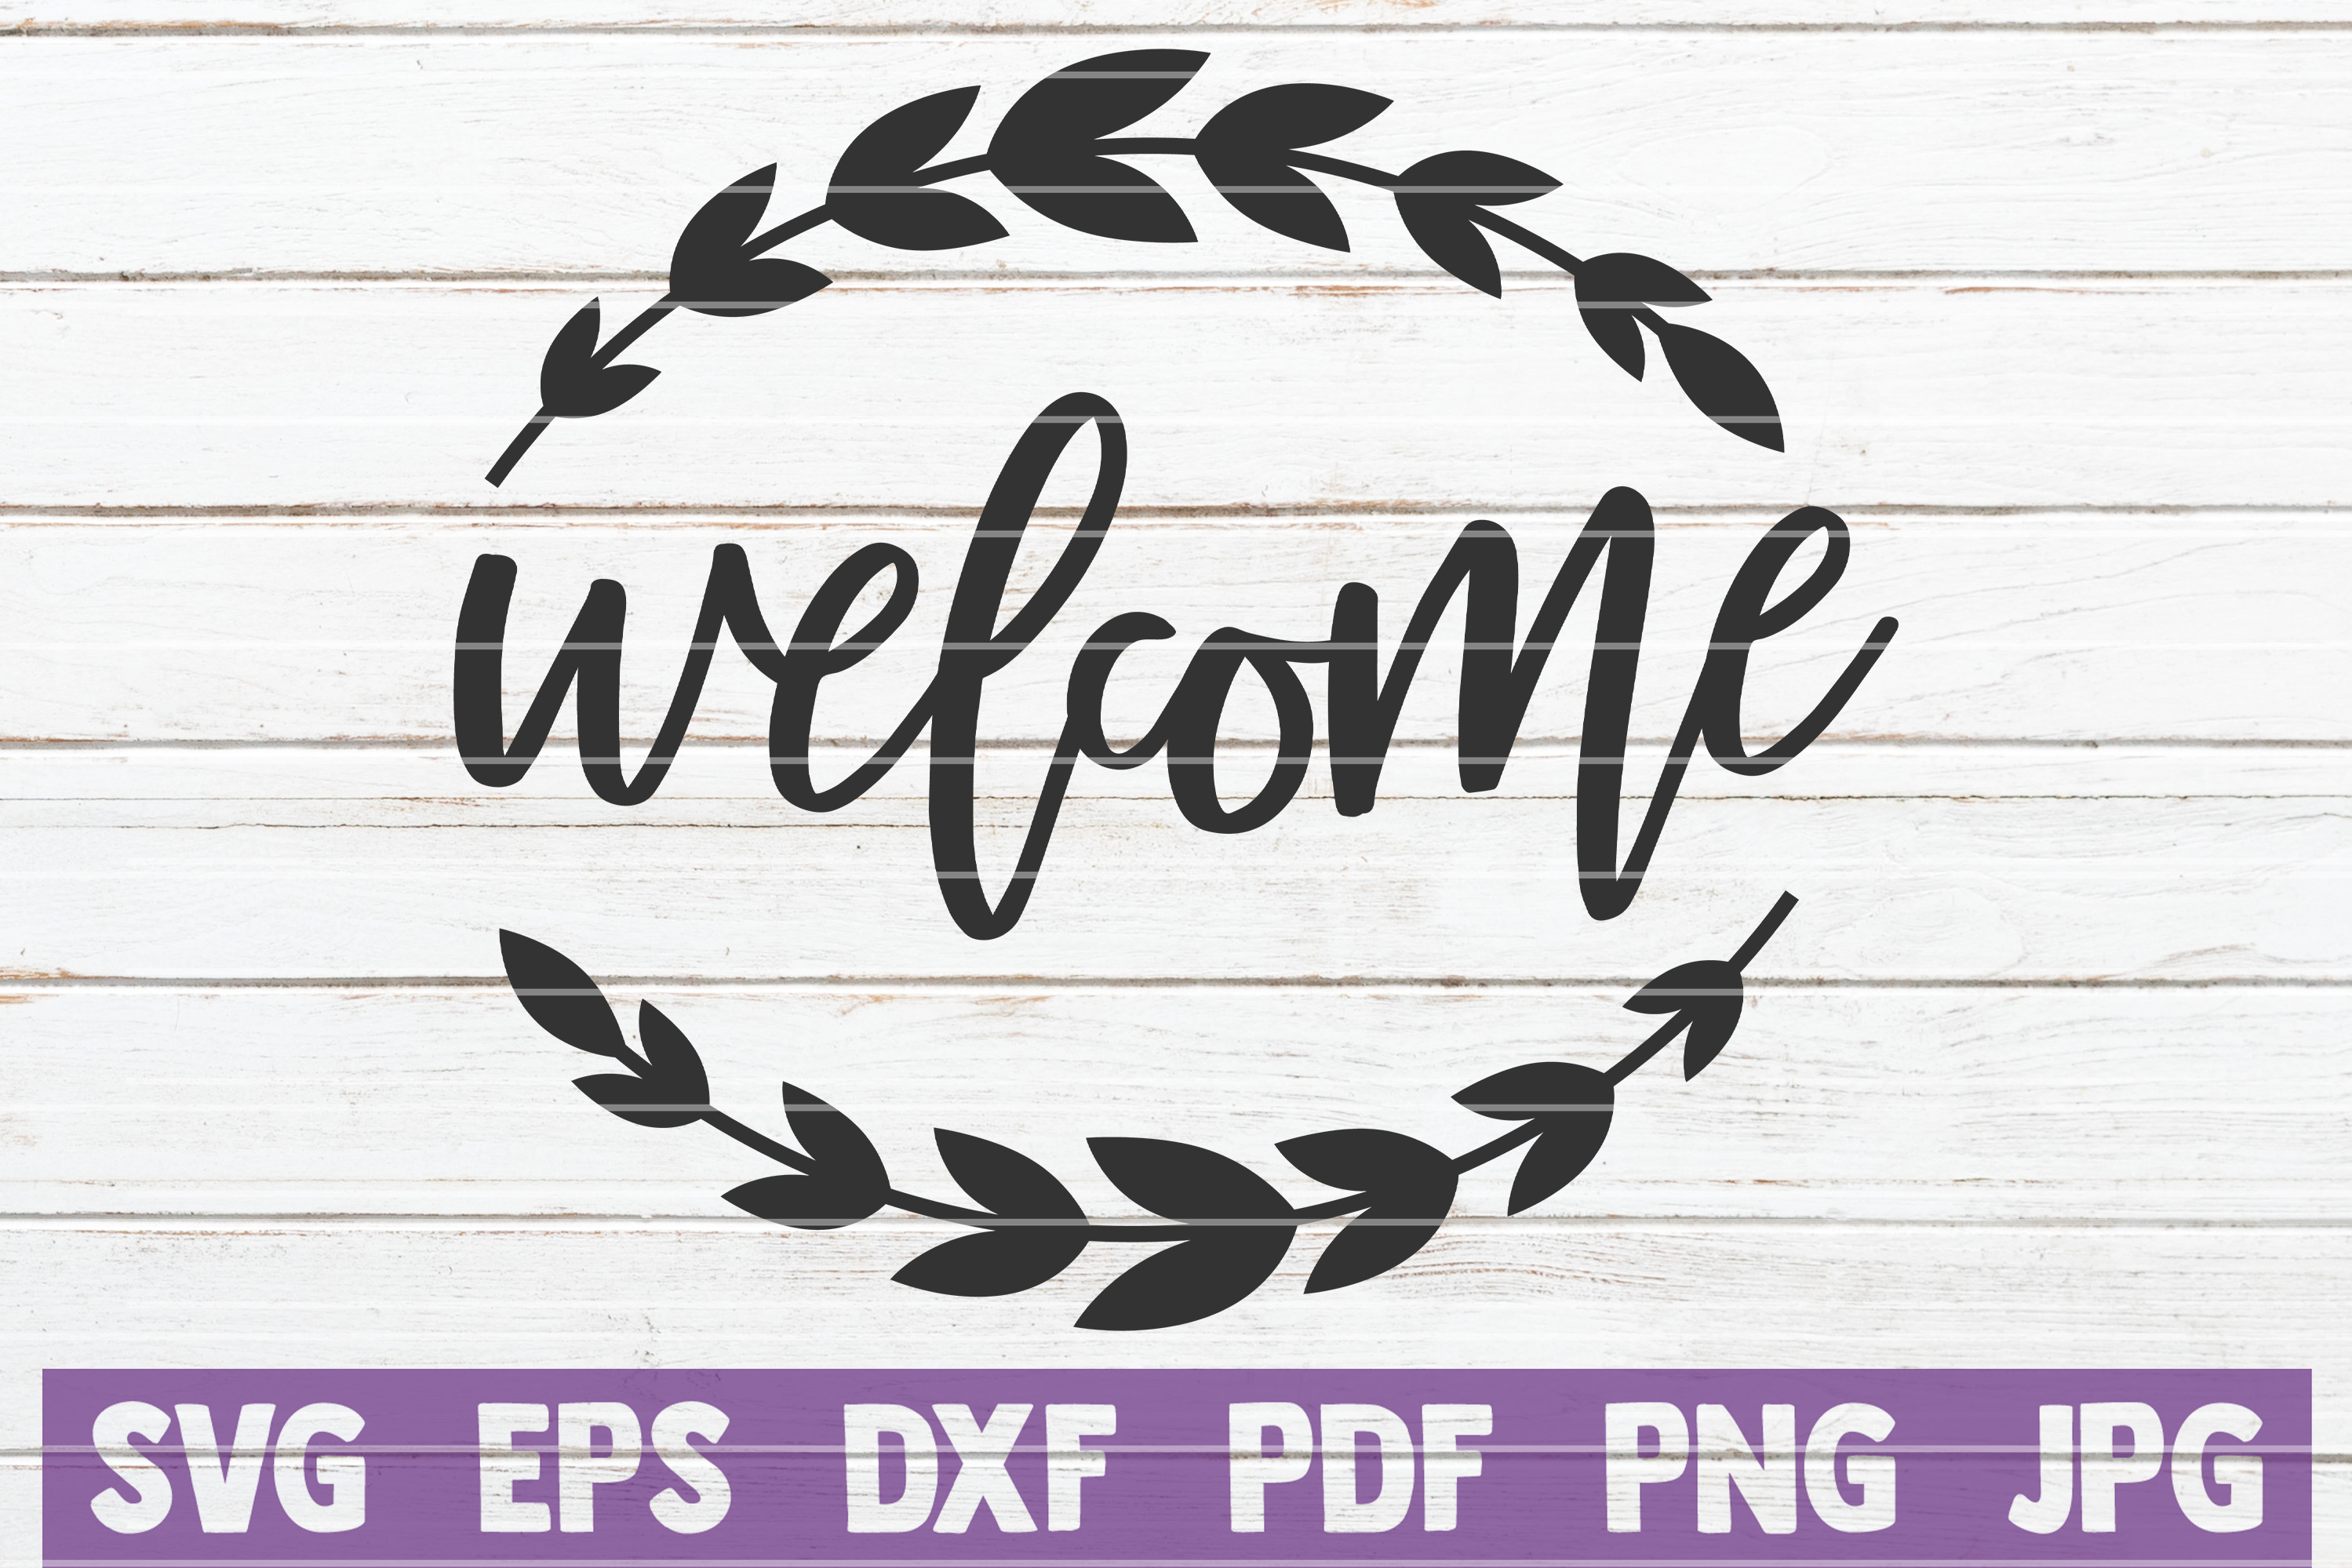 Download Free Welcome Graphic By Mintymarshmallows Creative Fabrica for Cricut Explore, Silhouette and other cutting machines.